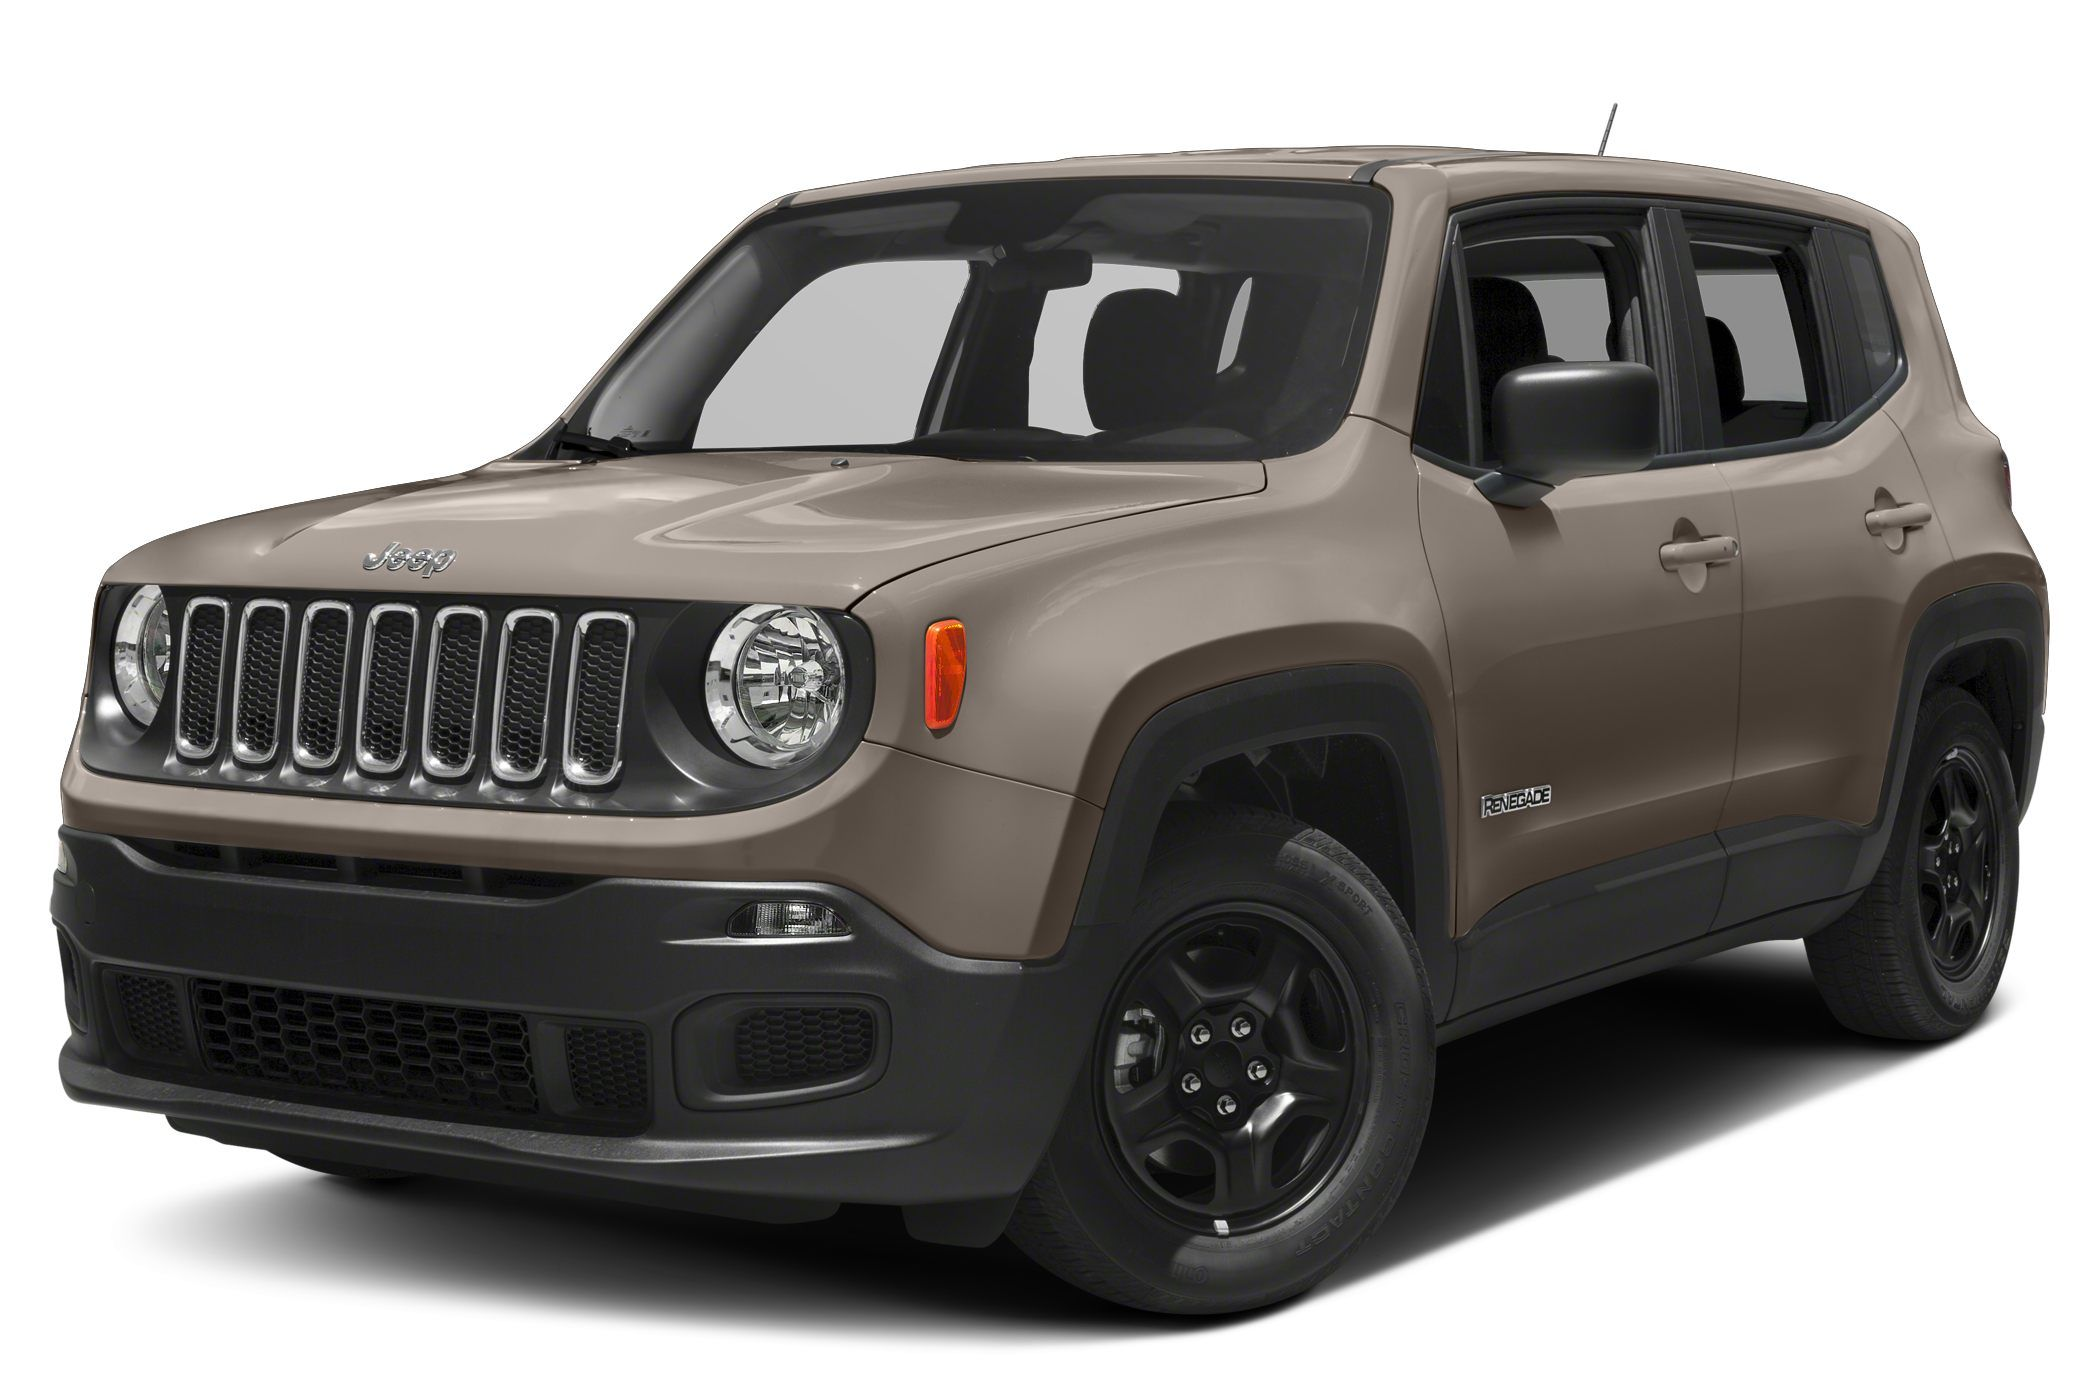 Jeep Renegade Jeep dealer, Jeep renegade, New car quotes